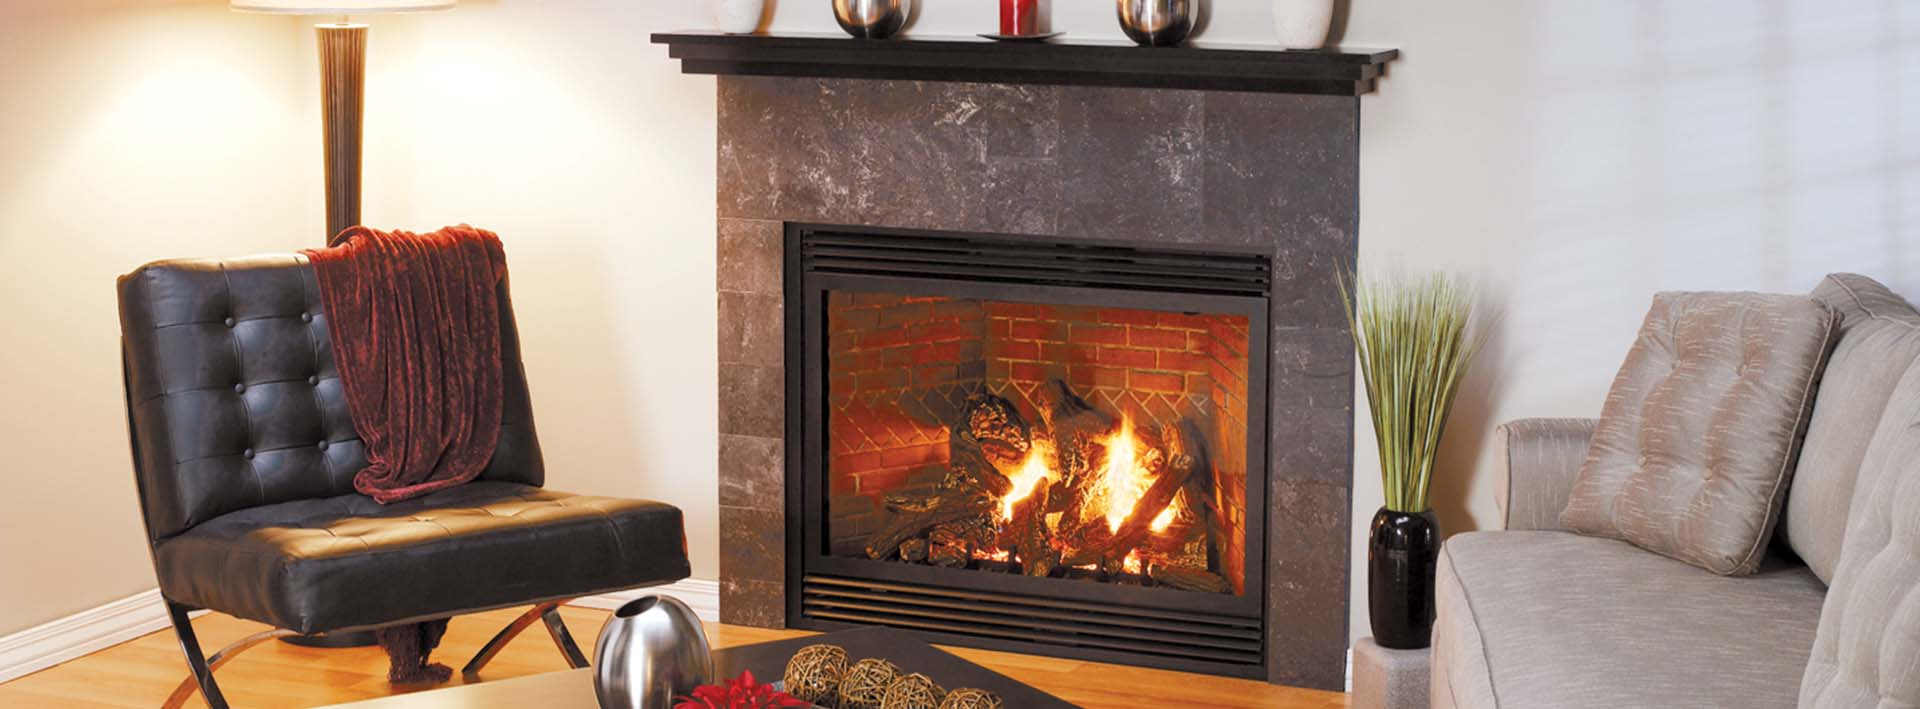 Fireplace Installation Repair Service Gas Wood Burning Or Vent